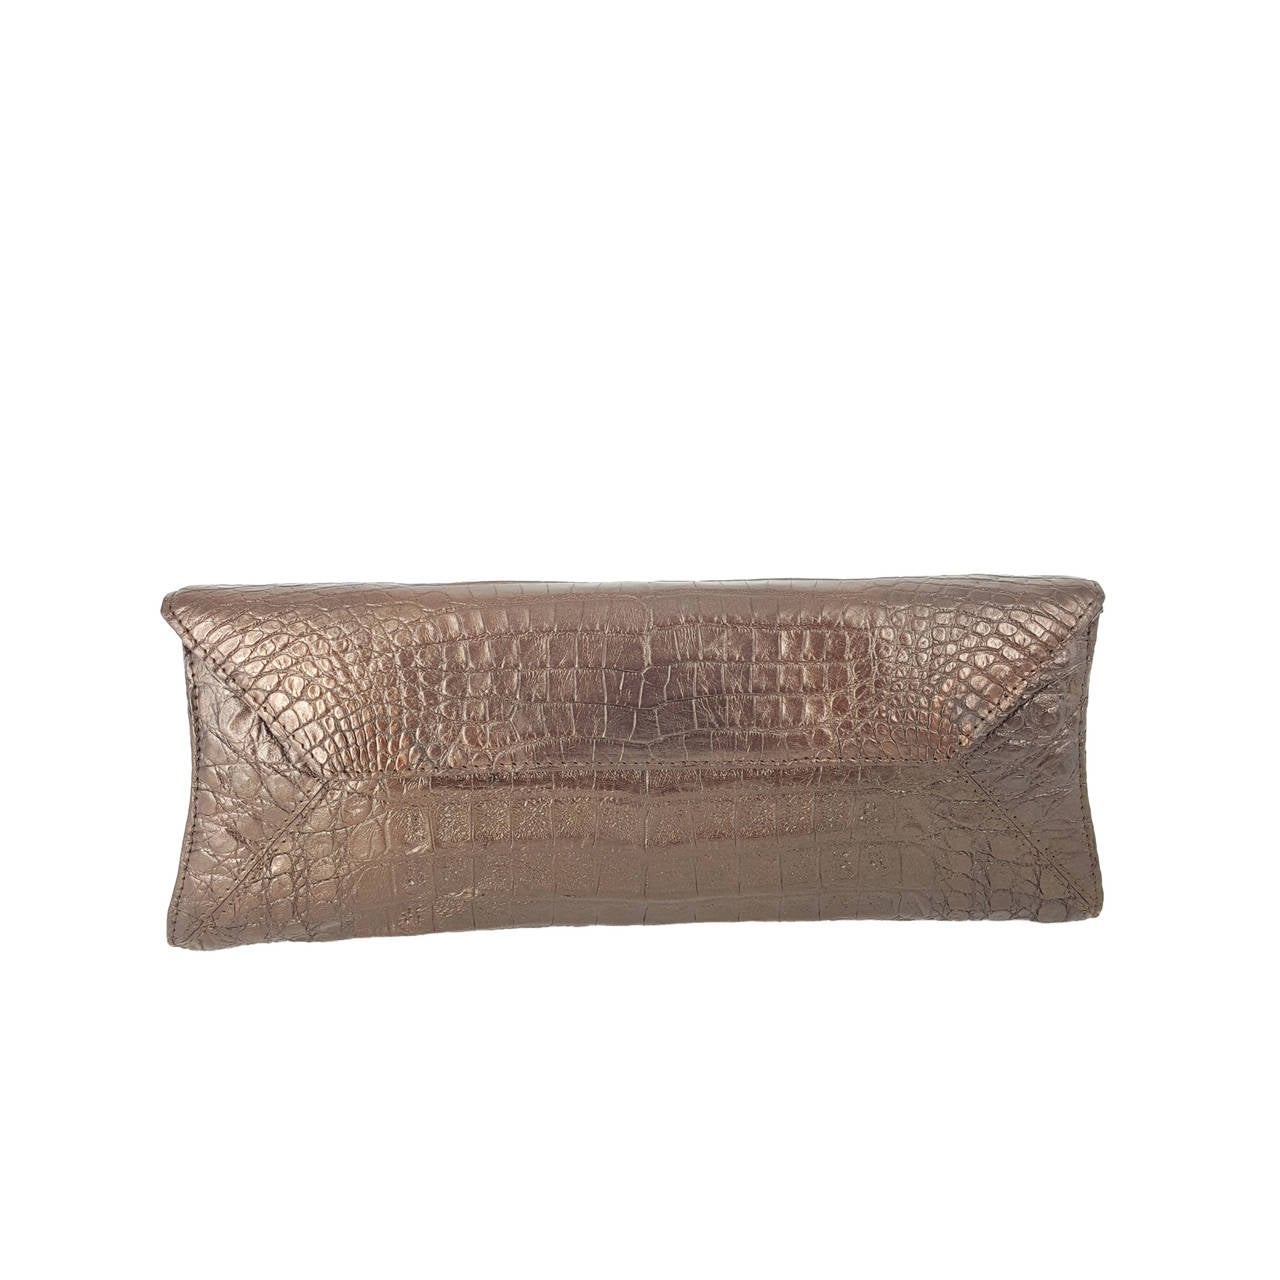 Nancy Gonzalez Shimmery Bronze Crocodile Clutch